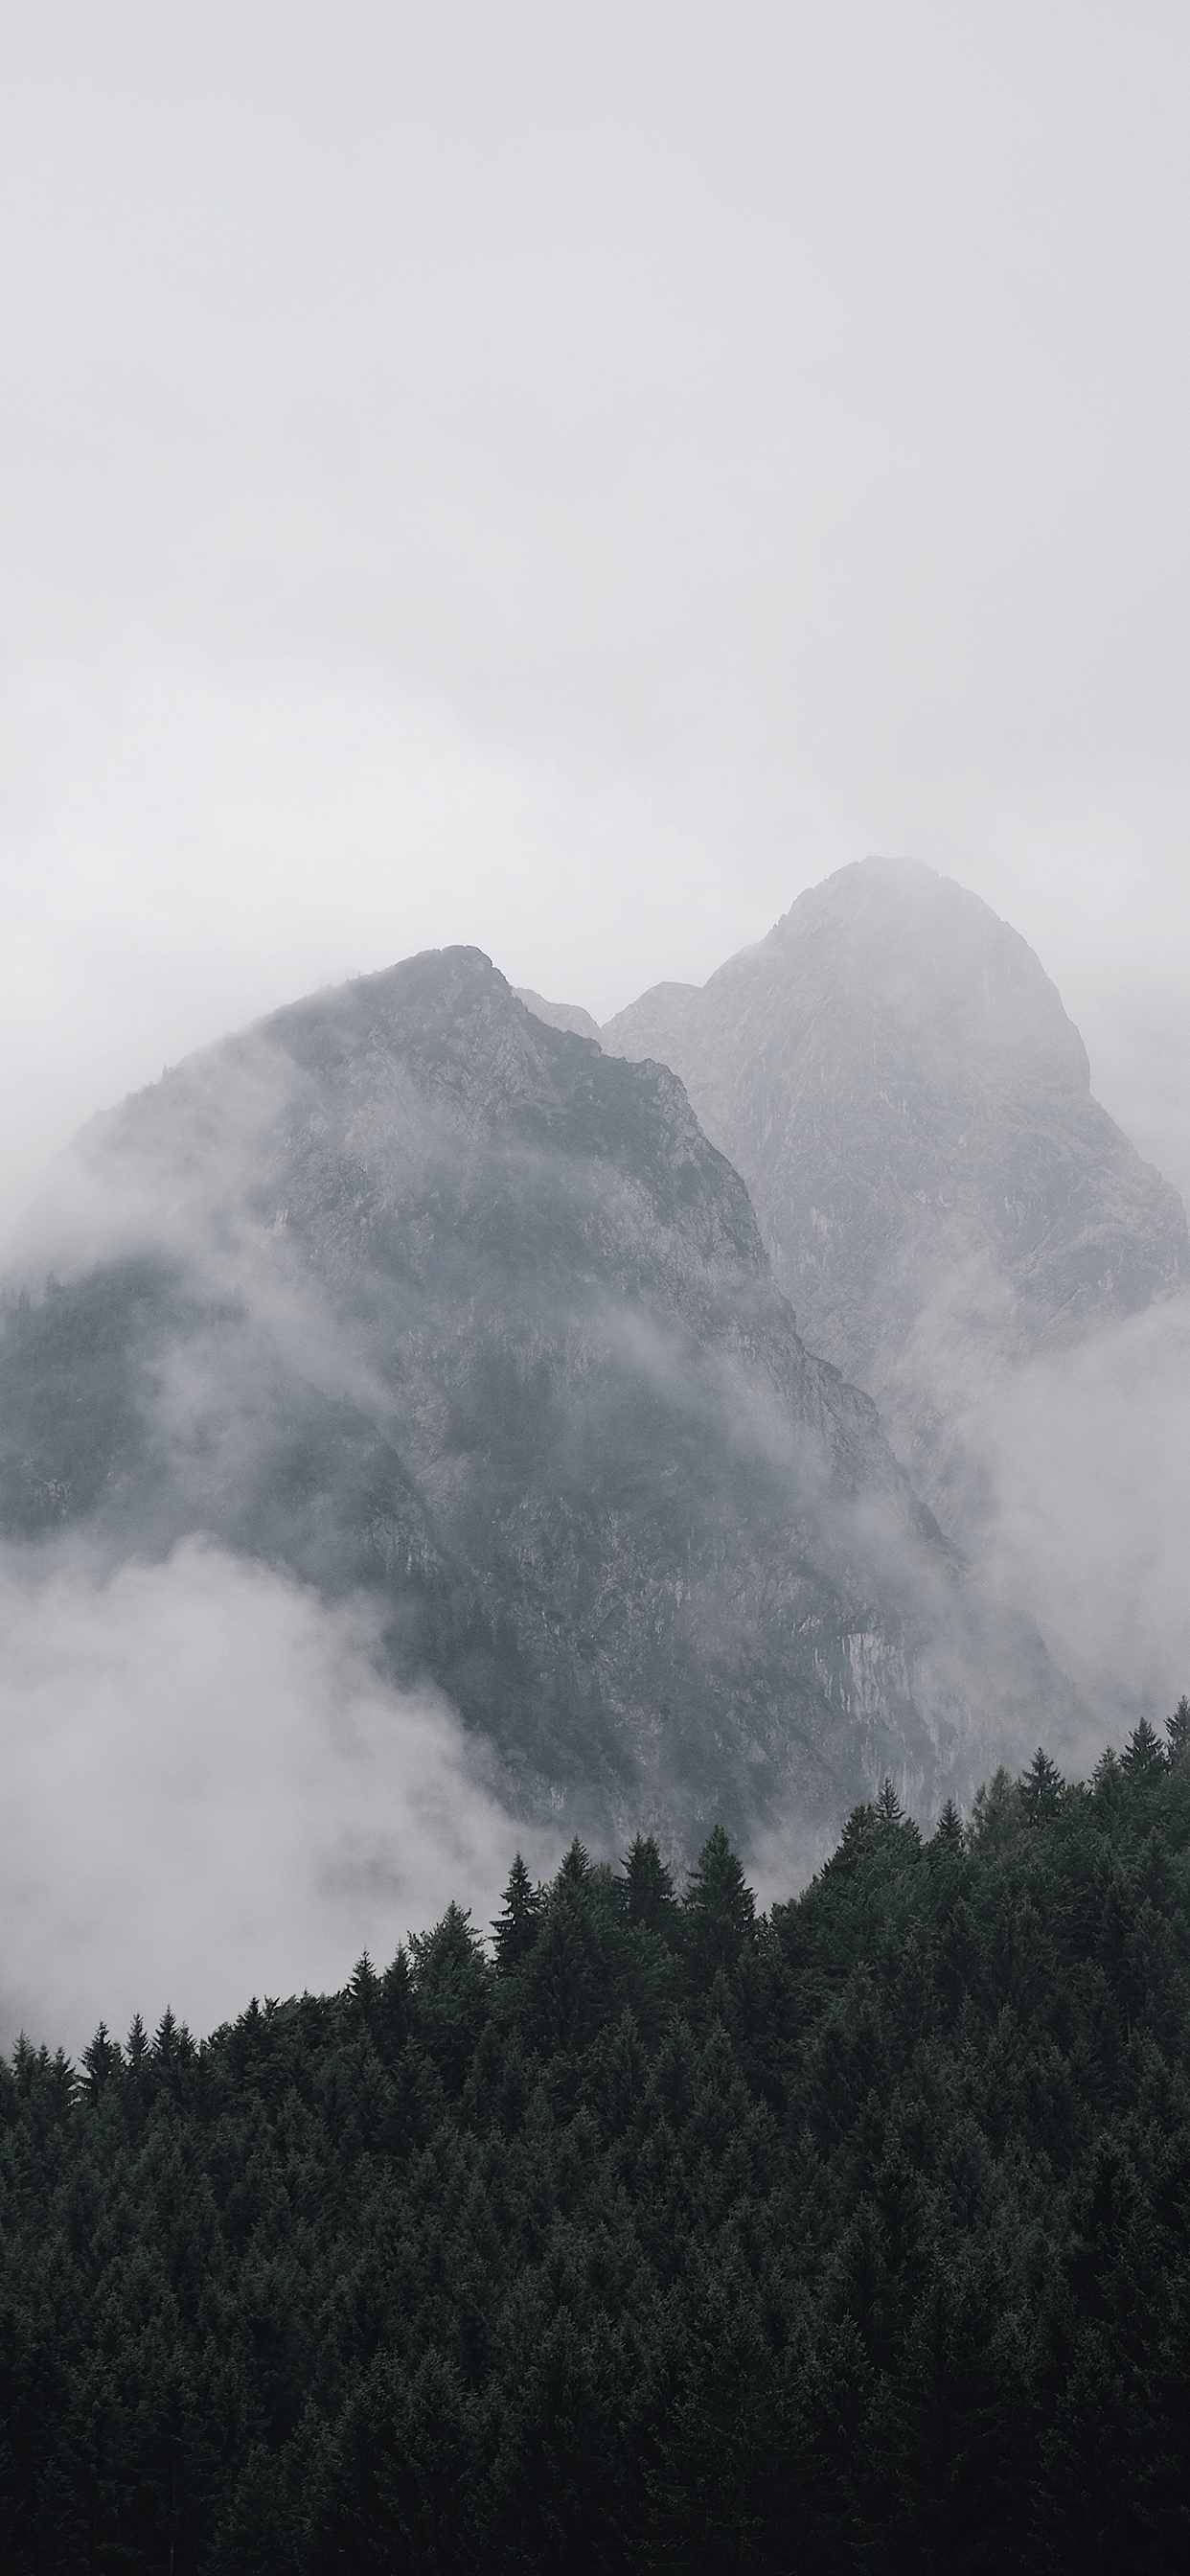 iPhone wallpapers zugspitze mountain Fonds d'écran iPhone du 03/07/2019